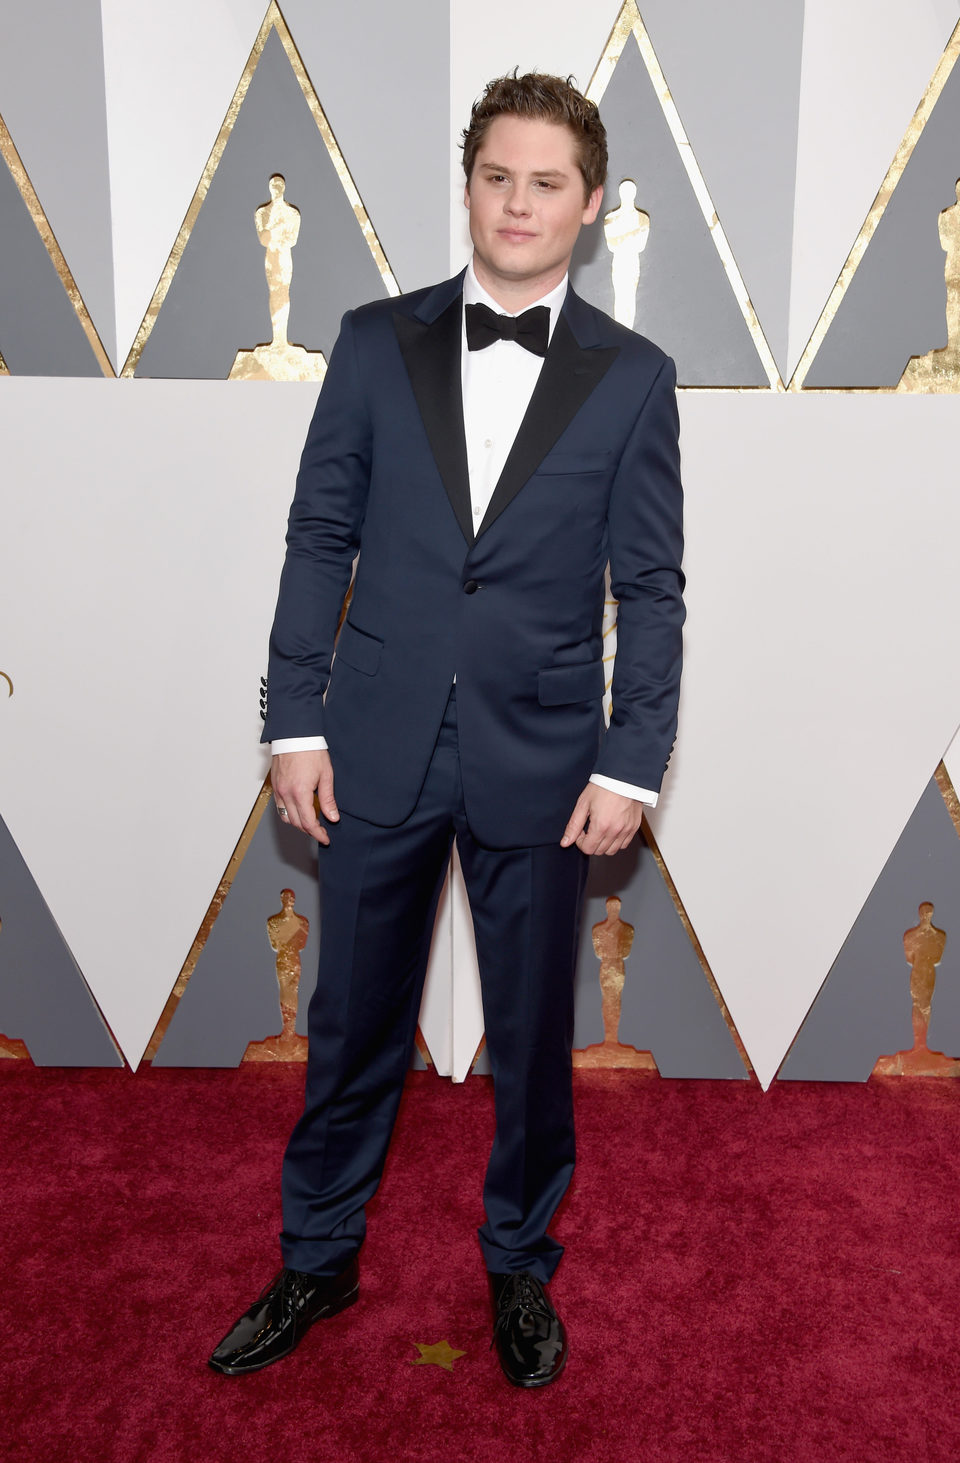 Matt Shively at the Oscars 2016 red carpet